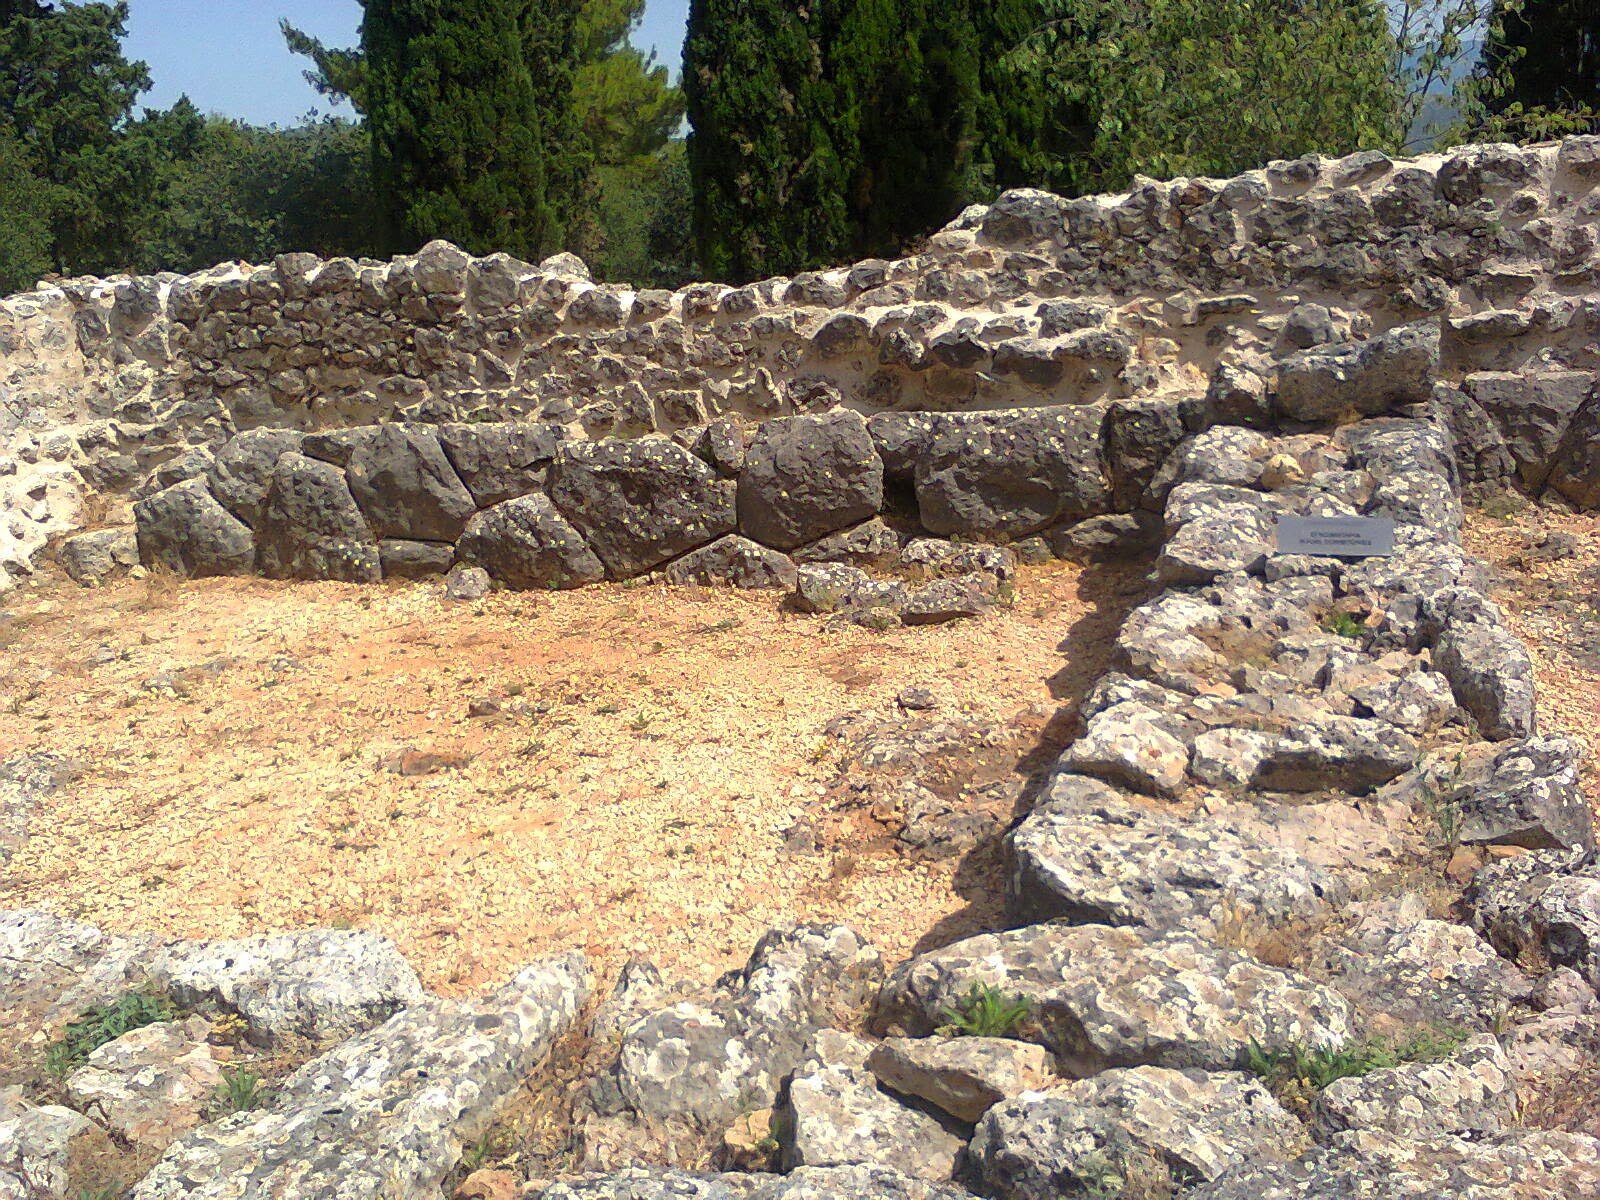 Necromanteion ruins in Greece